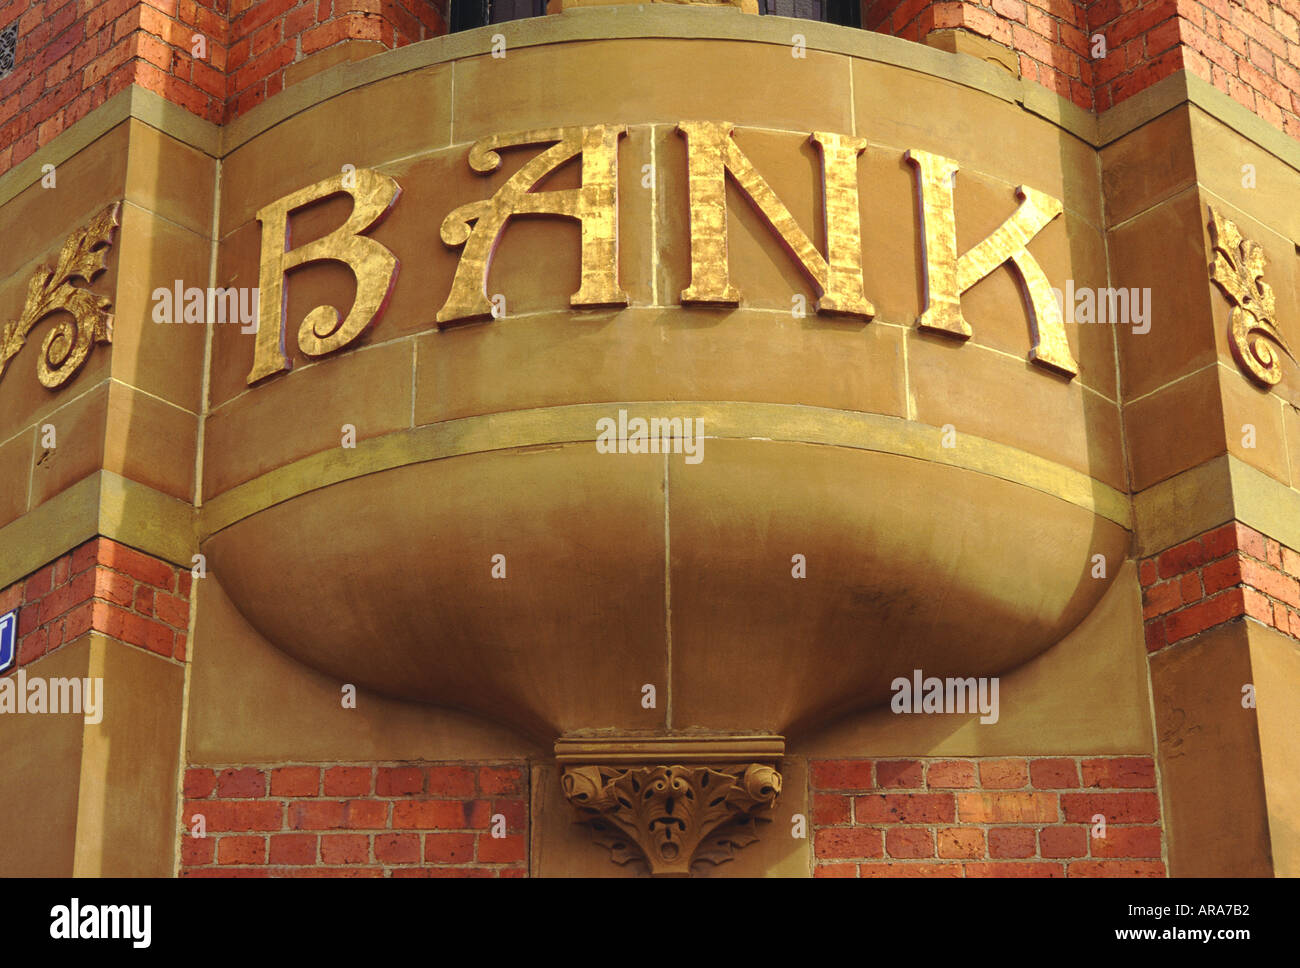 Old bank signage - Stock Image